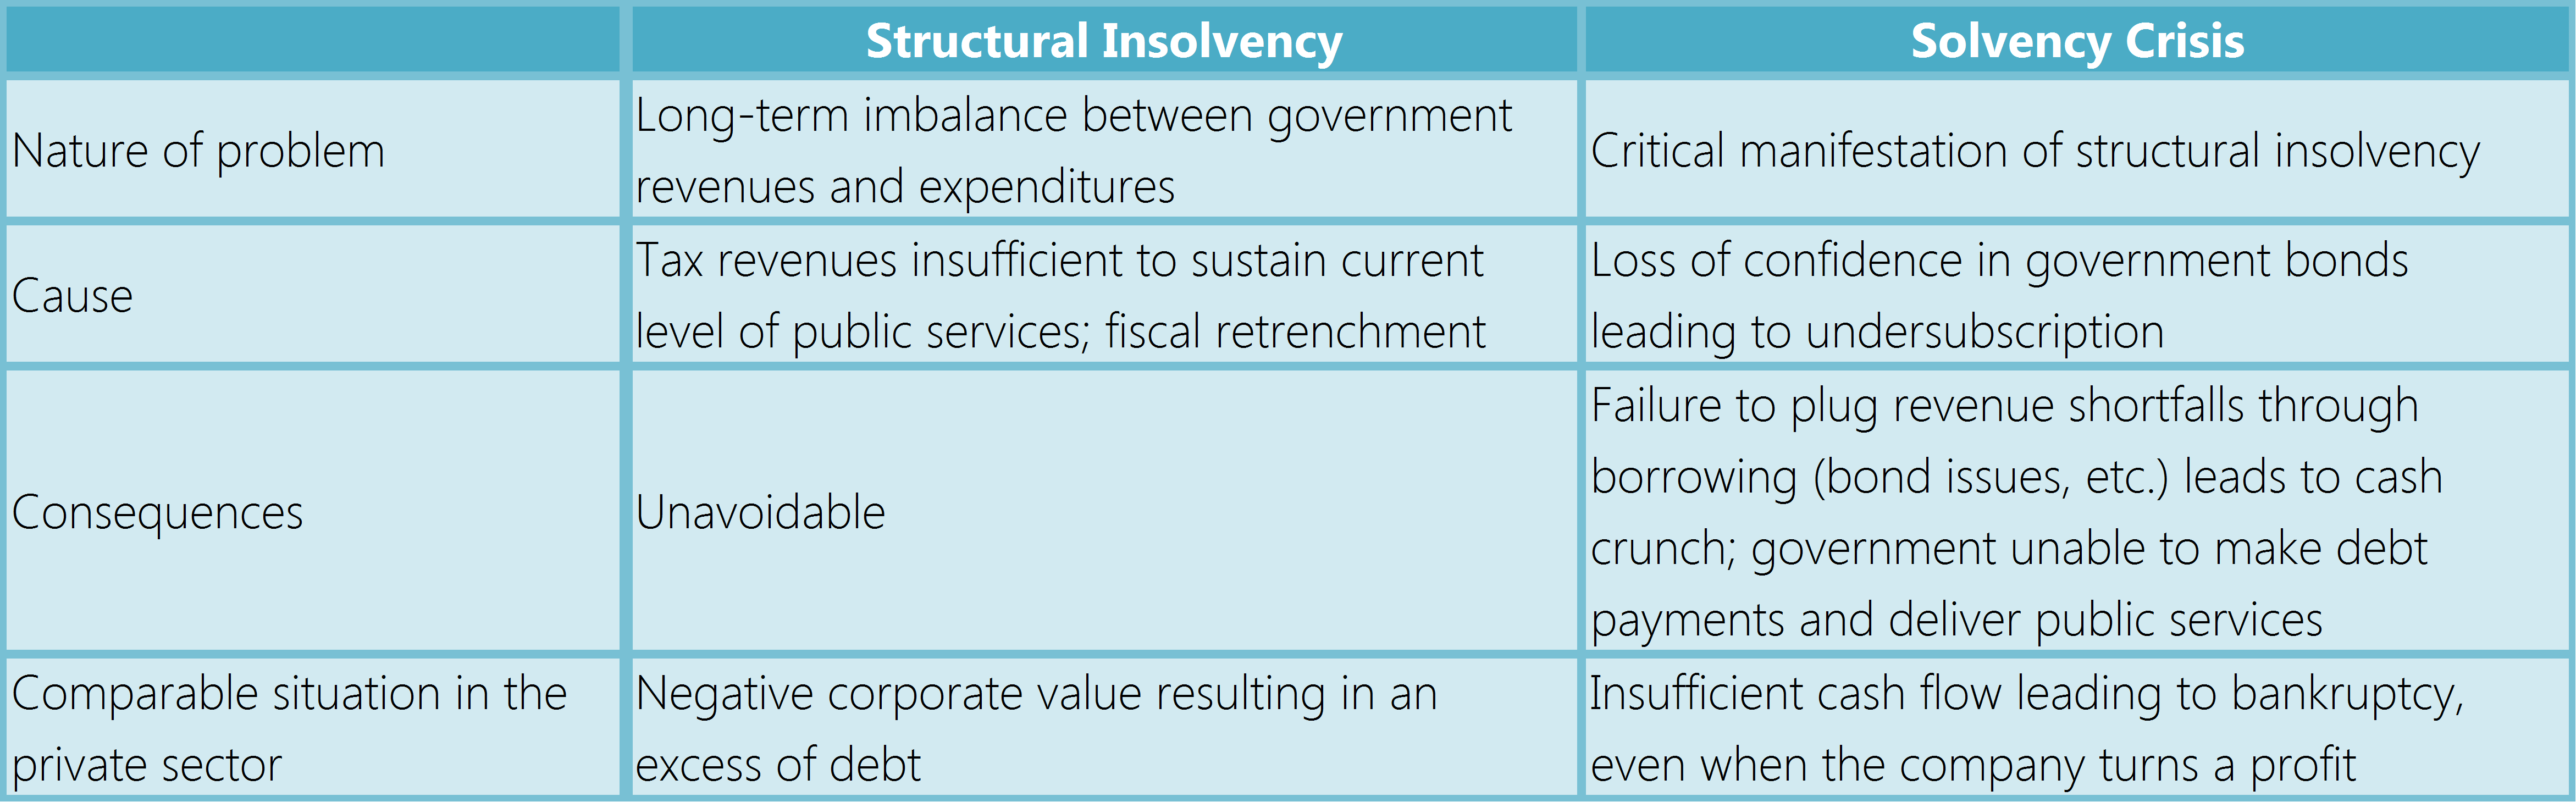 Figure 1. Two Types of Fiscal Insolvency